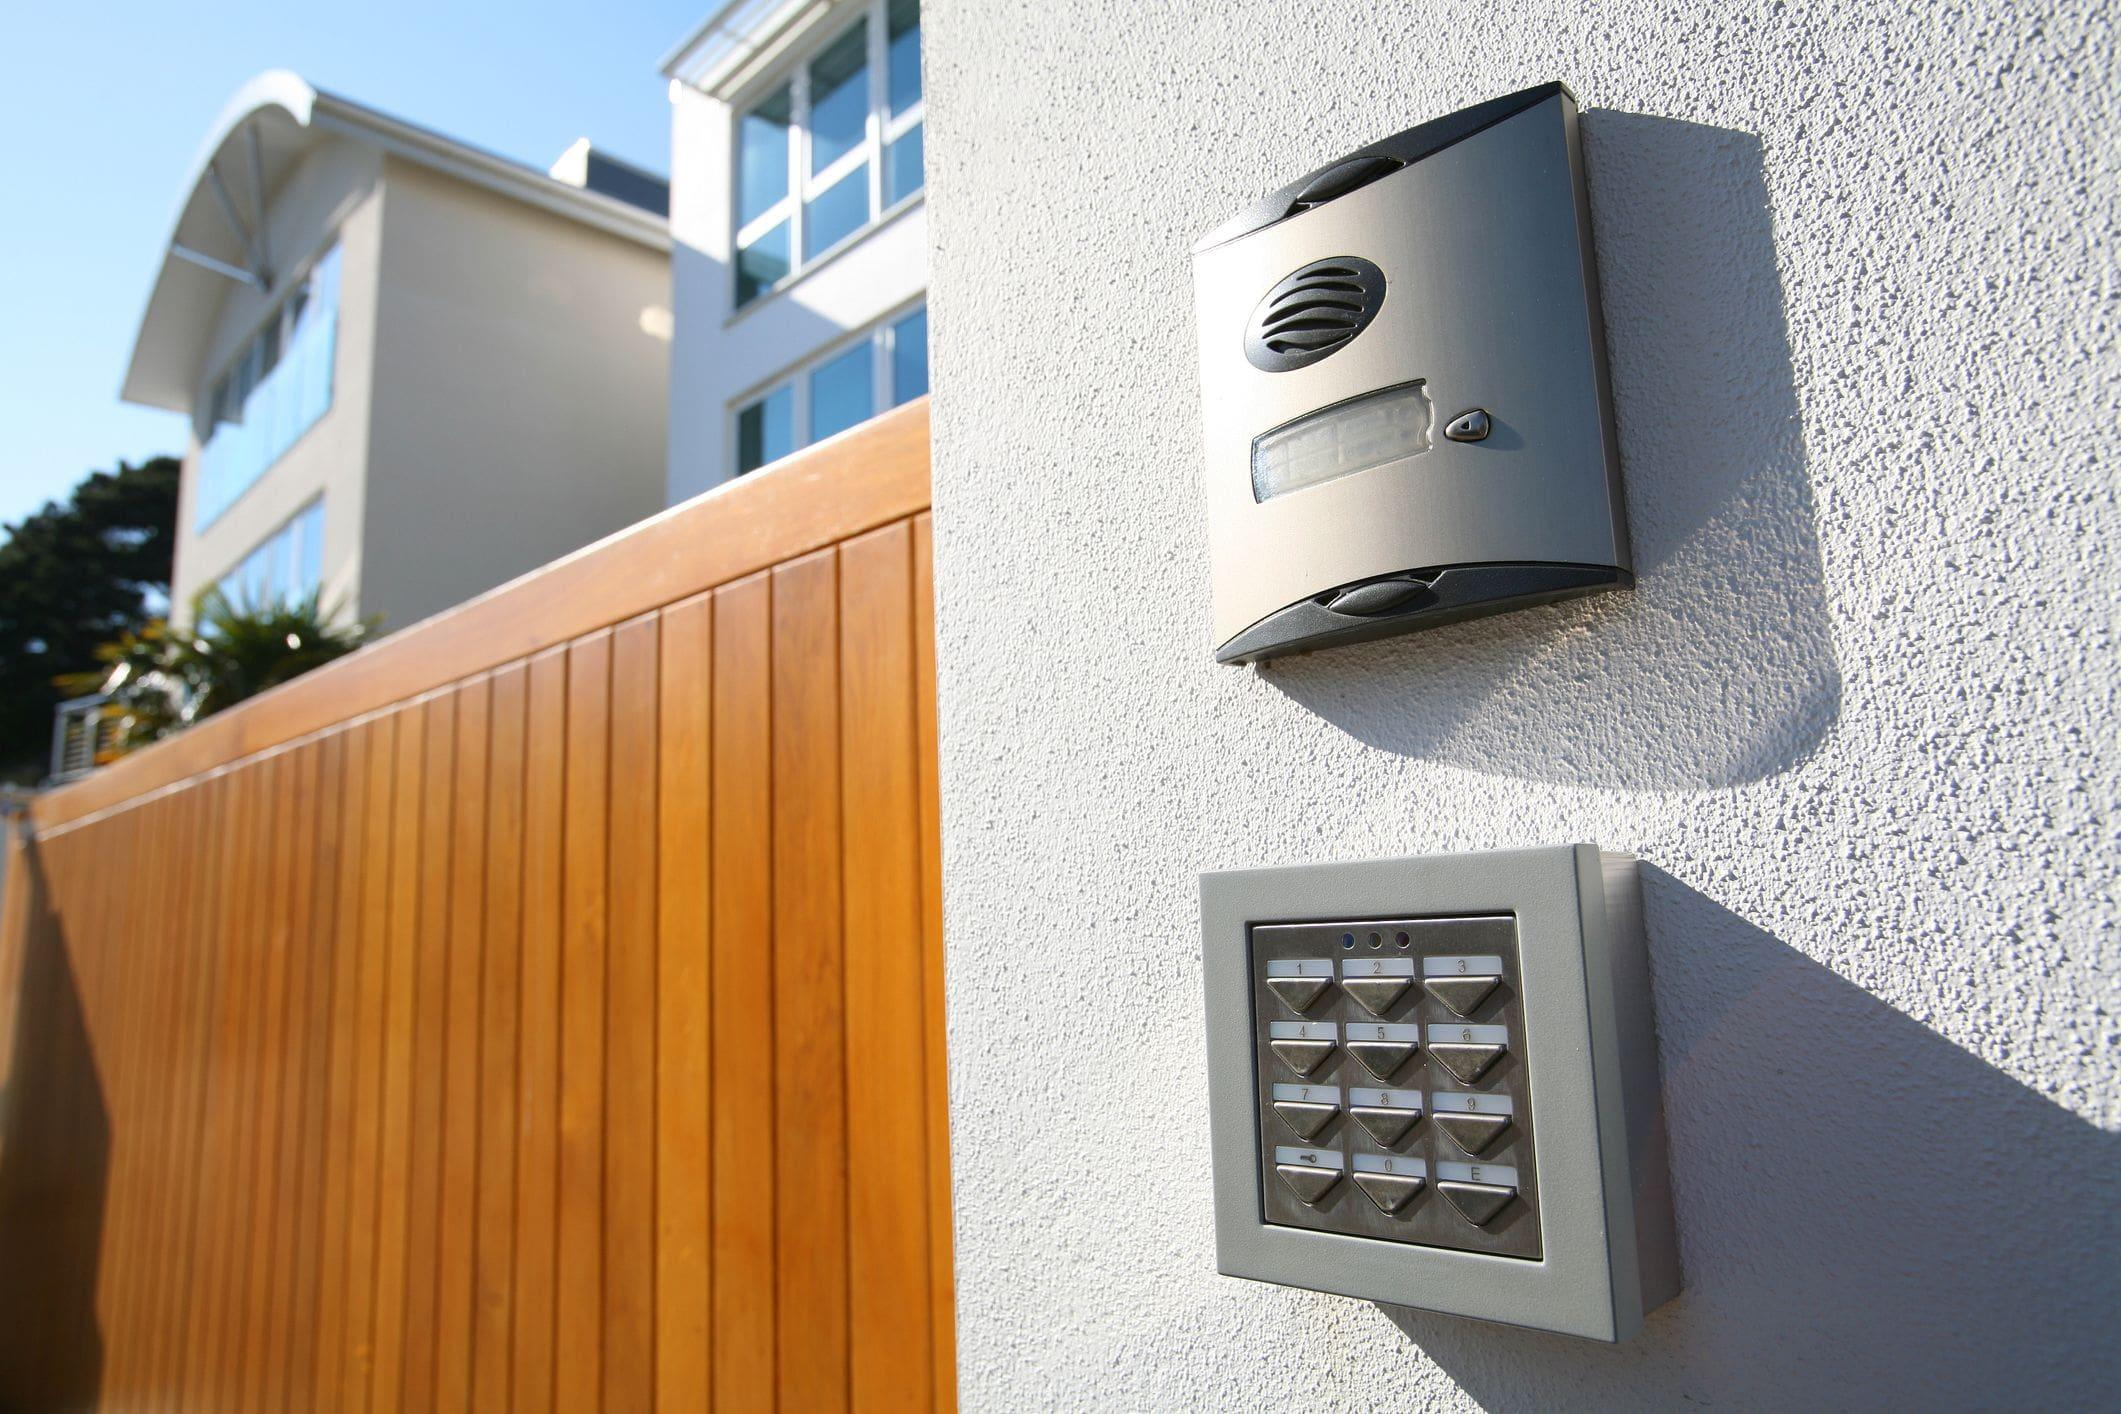 residential gate system with camera and keypad security